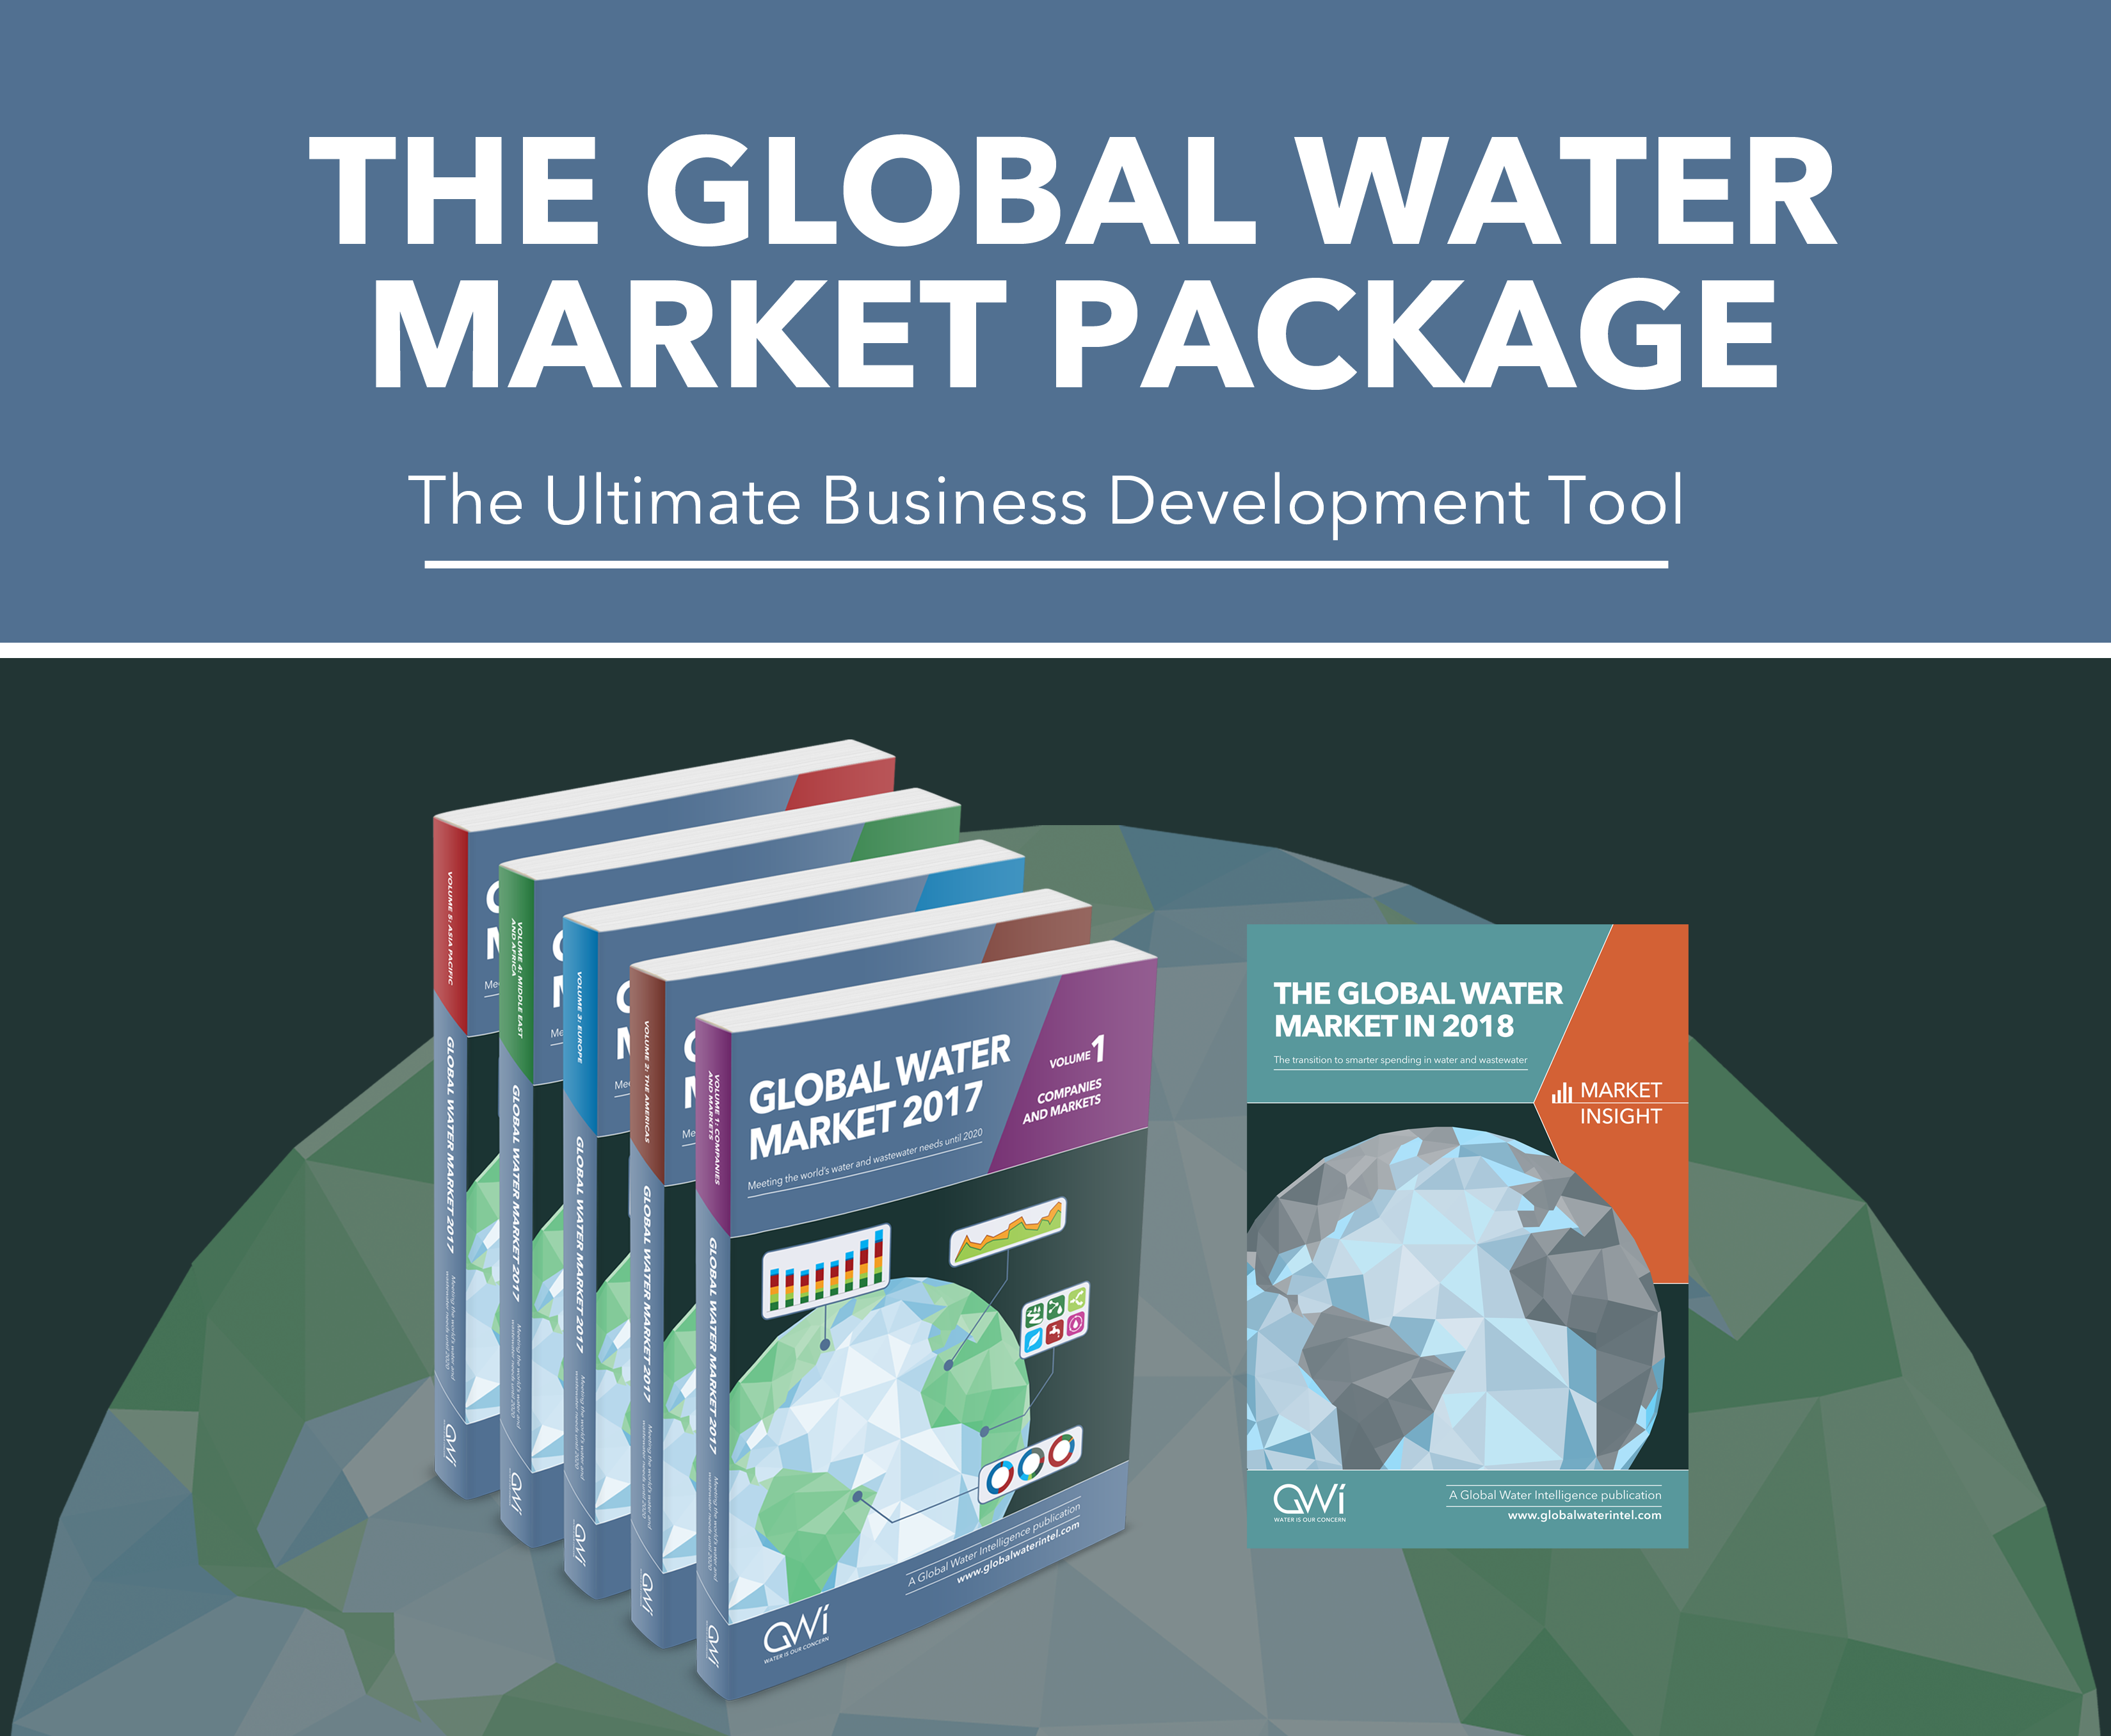 The Global Water Market Package